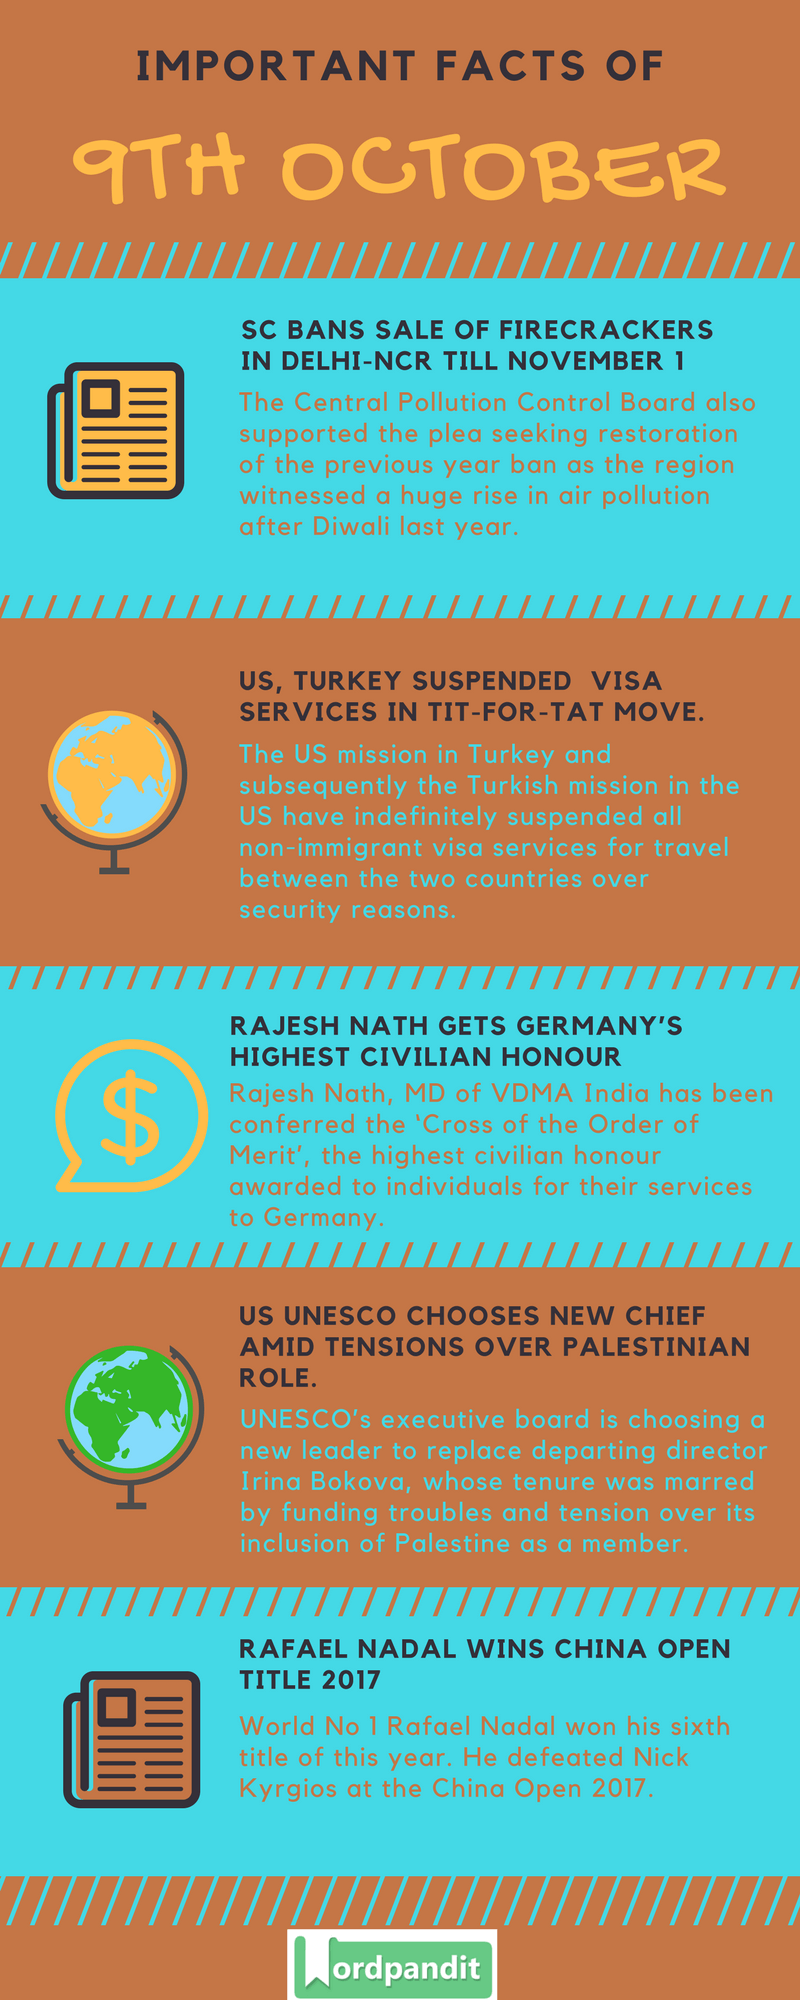 Daily-Current-Affairs-9-october-2017-Current-Affairs-Quiz-october-9-2017-Current-Affairs-Infographic